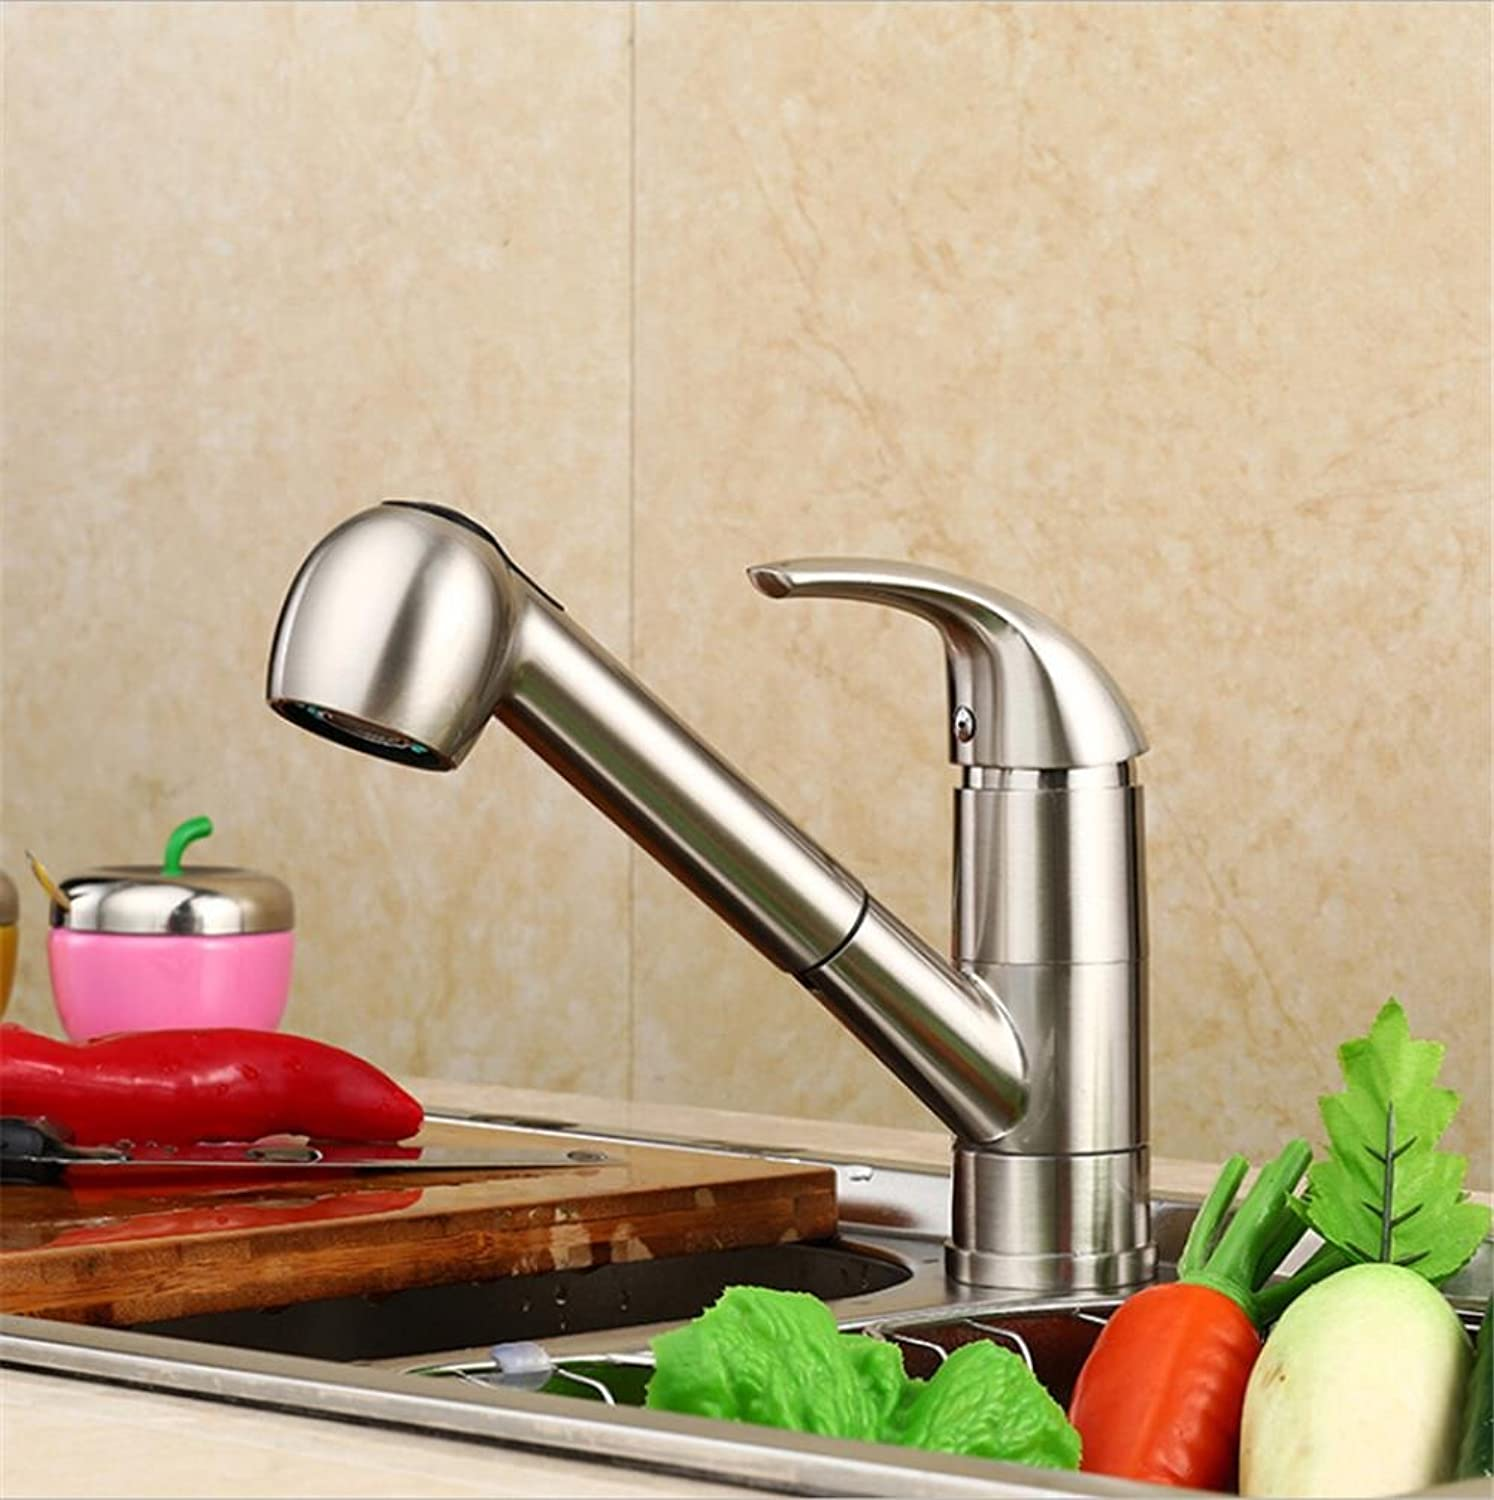 HomJo Bathroom Faucet Brass Ceramic Nickel wire drawing welding Single Hole Pull type Sink Mixer Tap